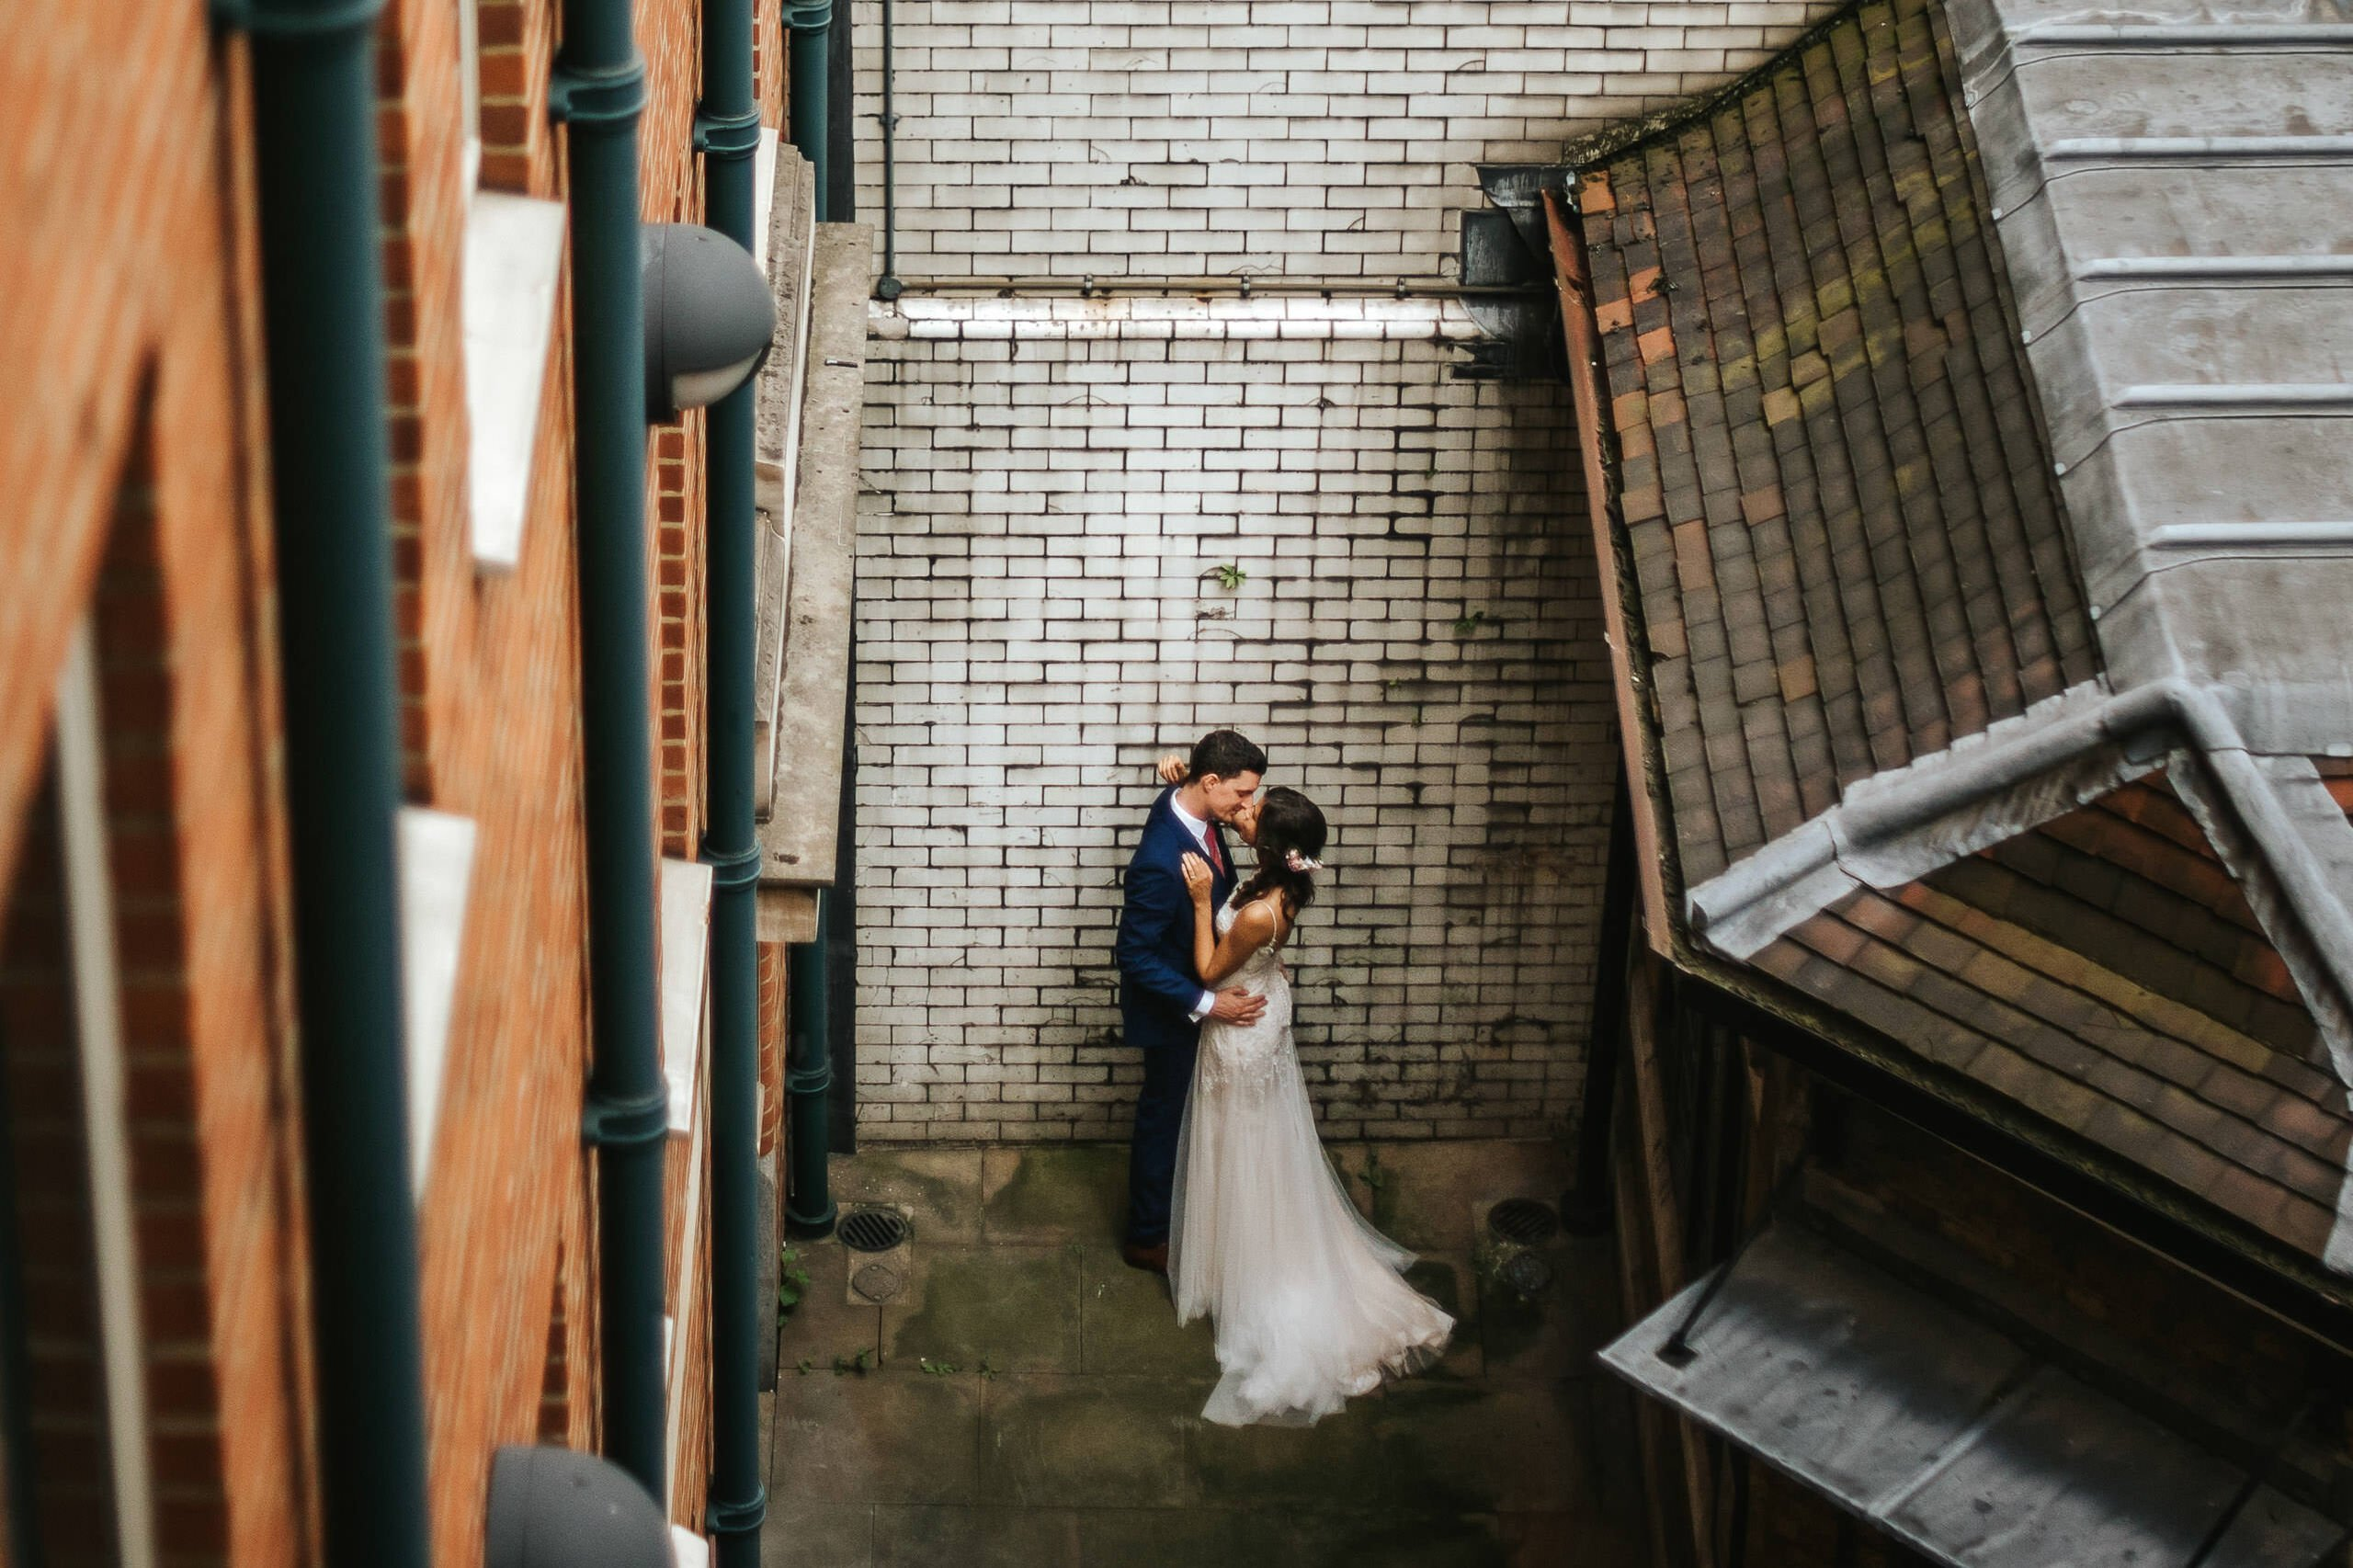 nelyweds kissing in the corner of the street by london wedding photographer